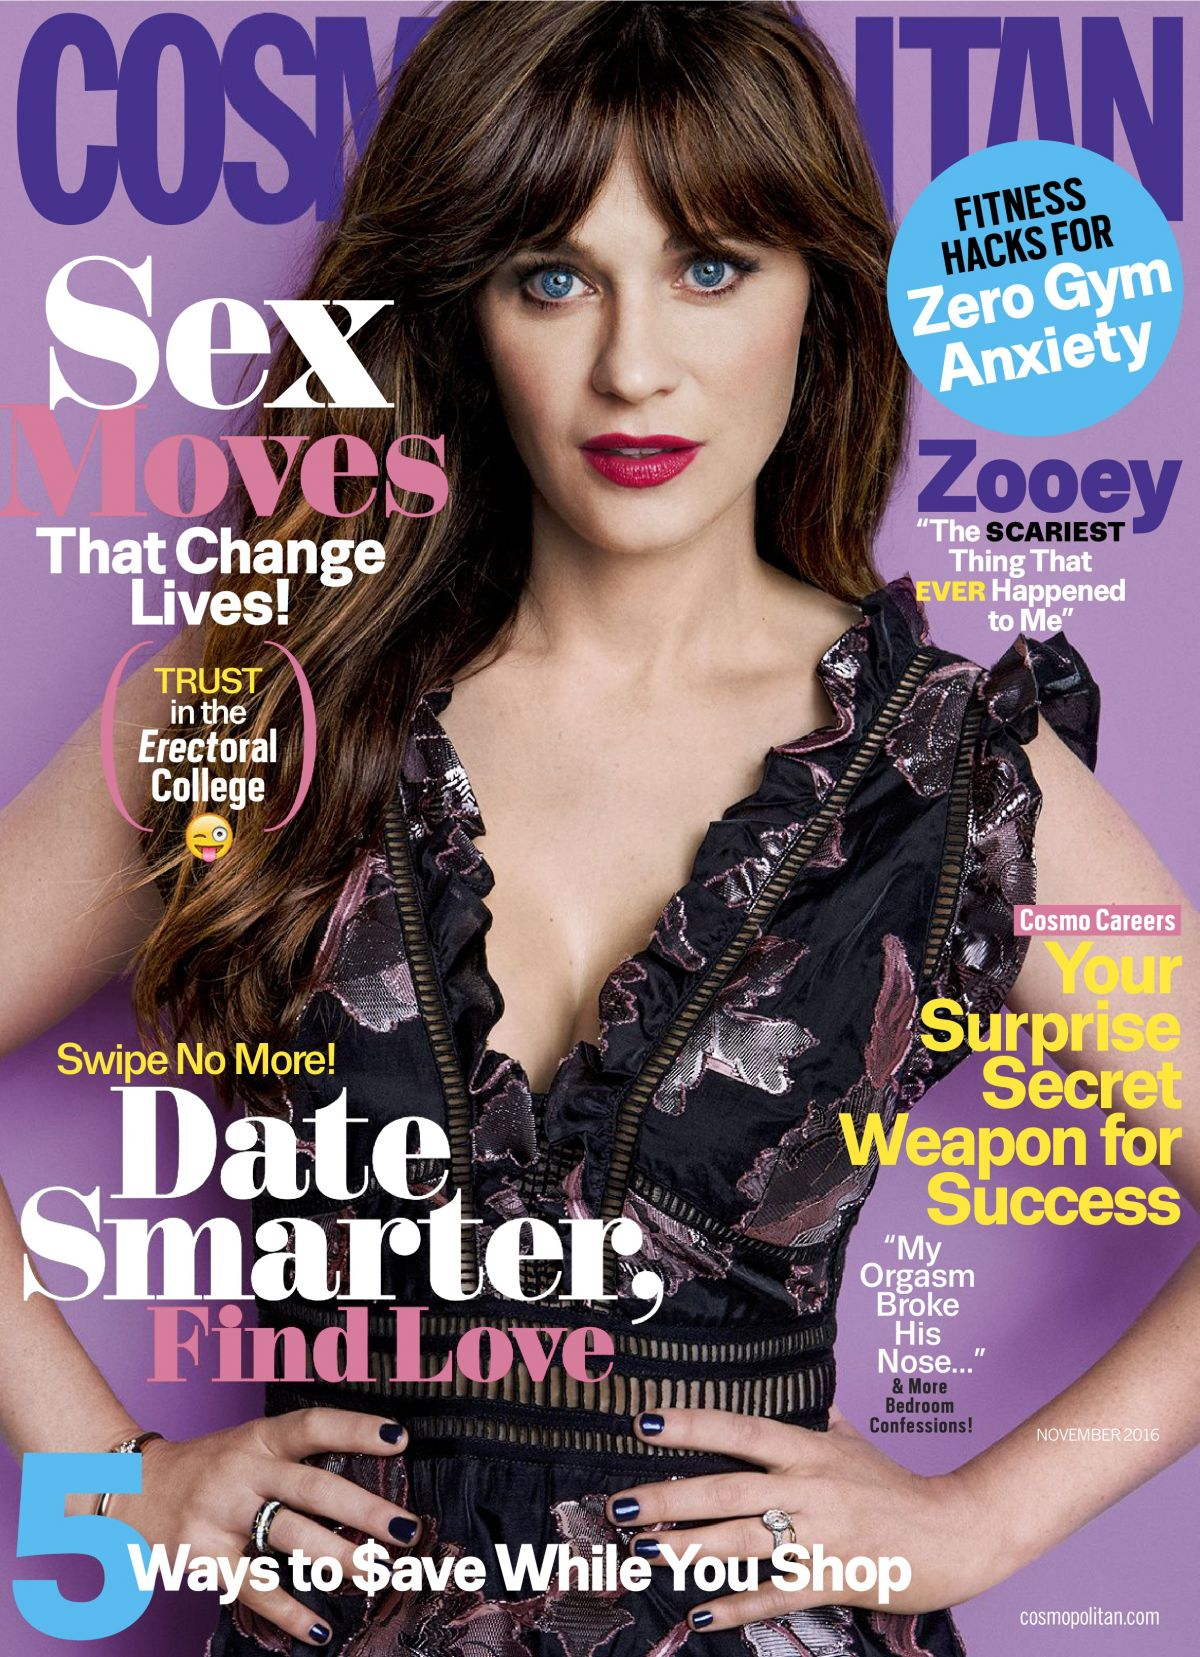 ZOOEY DESCHANEL in Cosmopolitan Magazine, November 2016